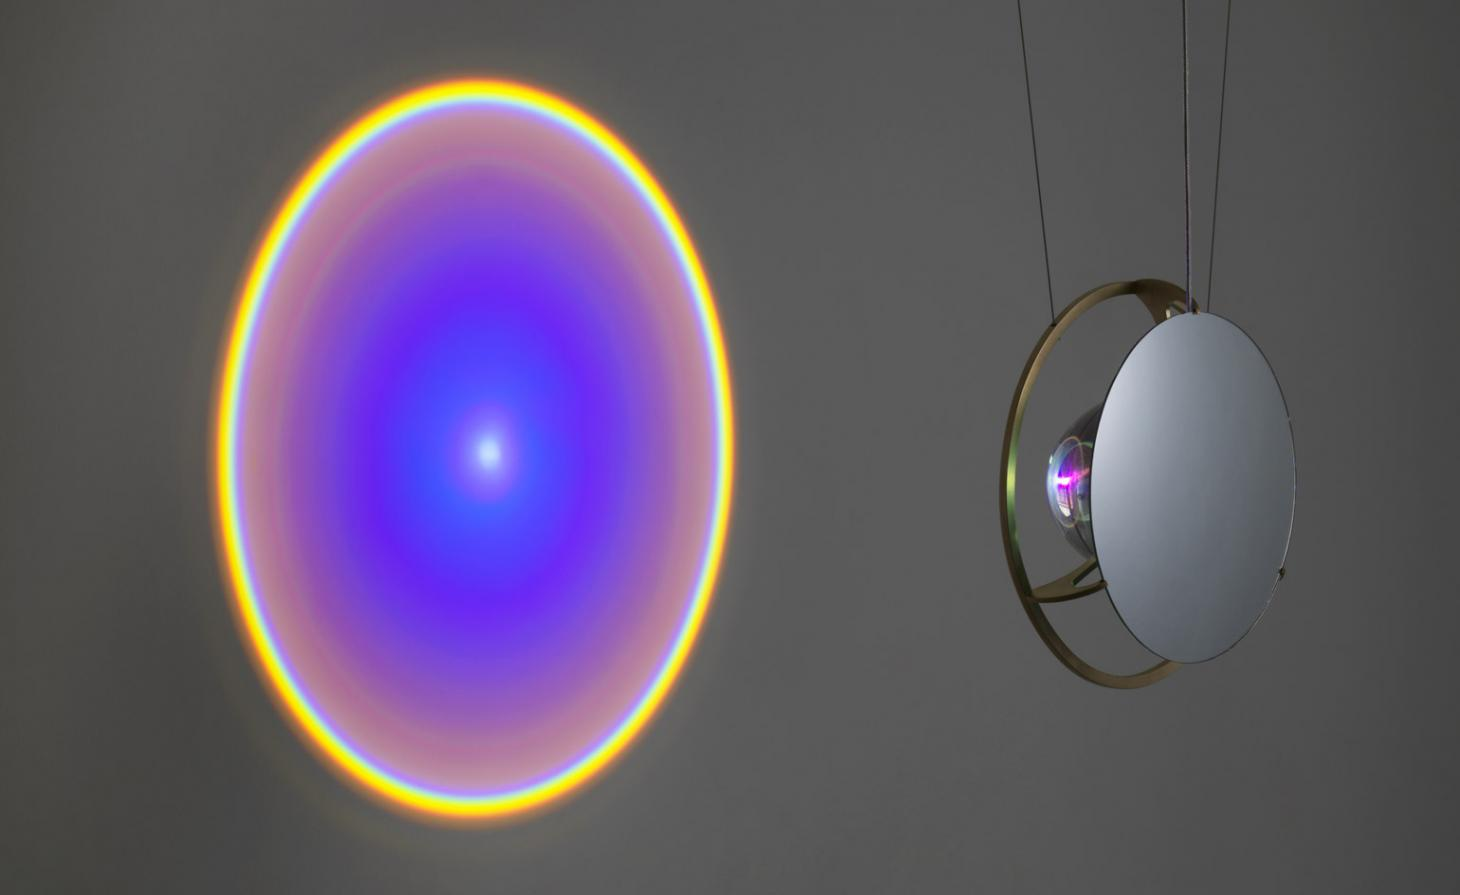 Olafur Eliasson reflects on ways of seeing ahead of his latest exhibiton